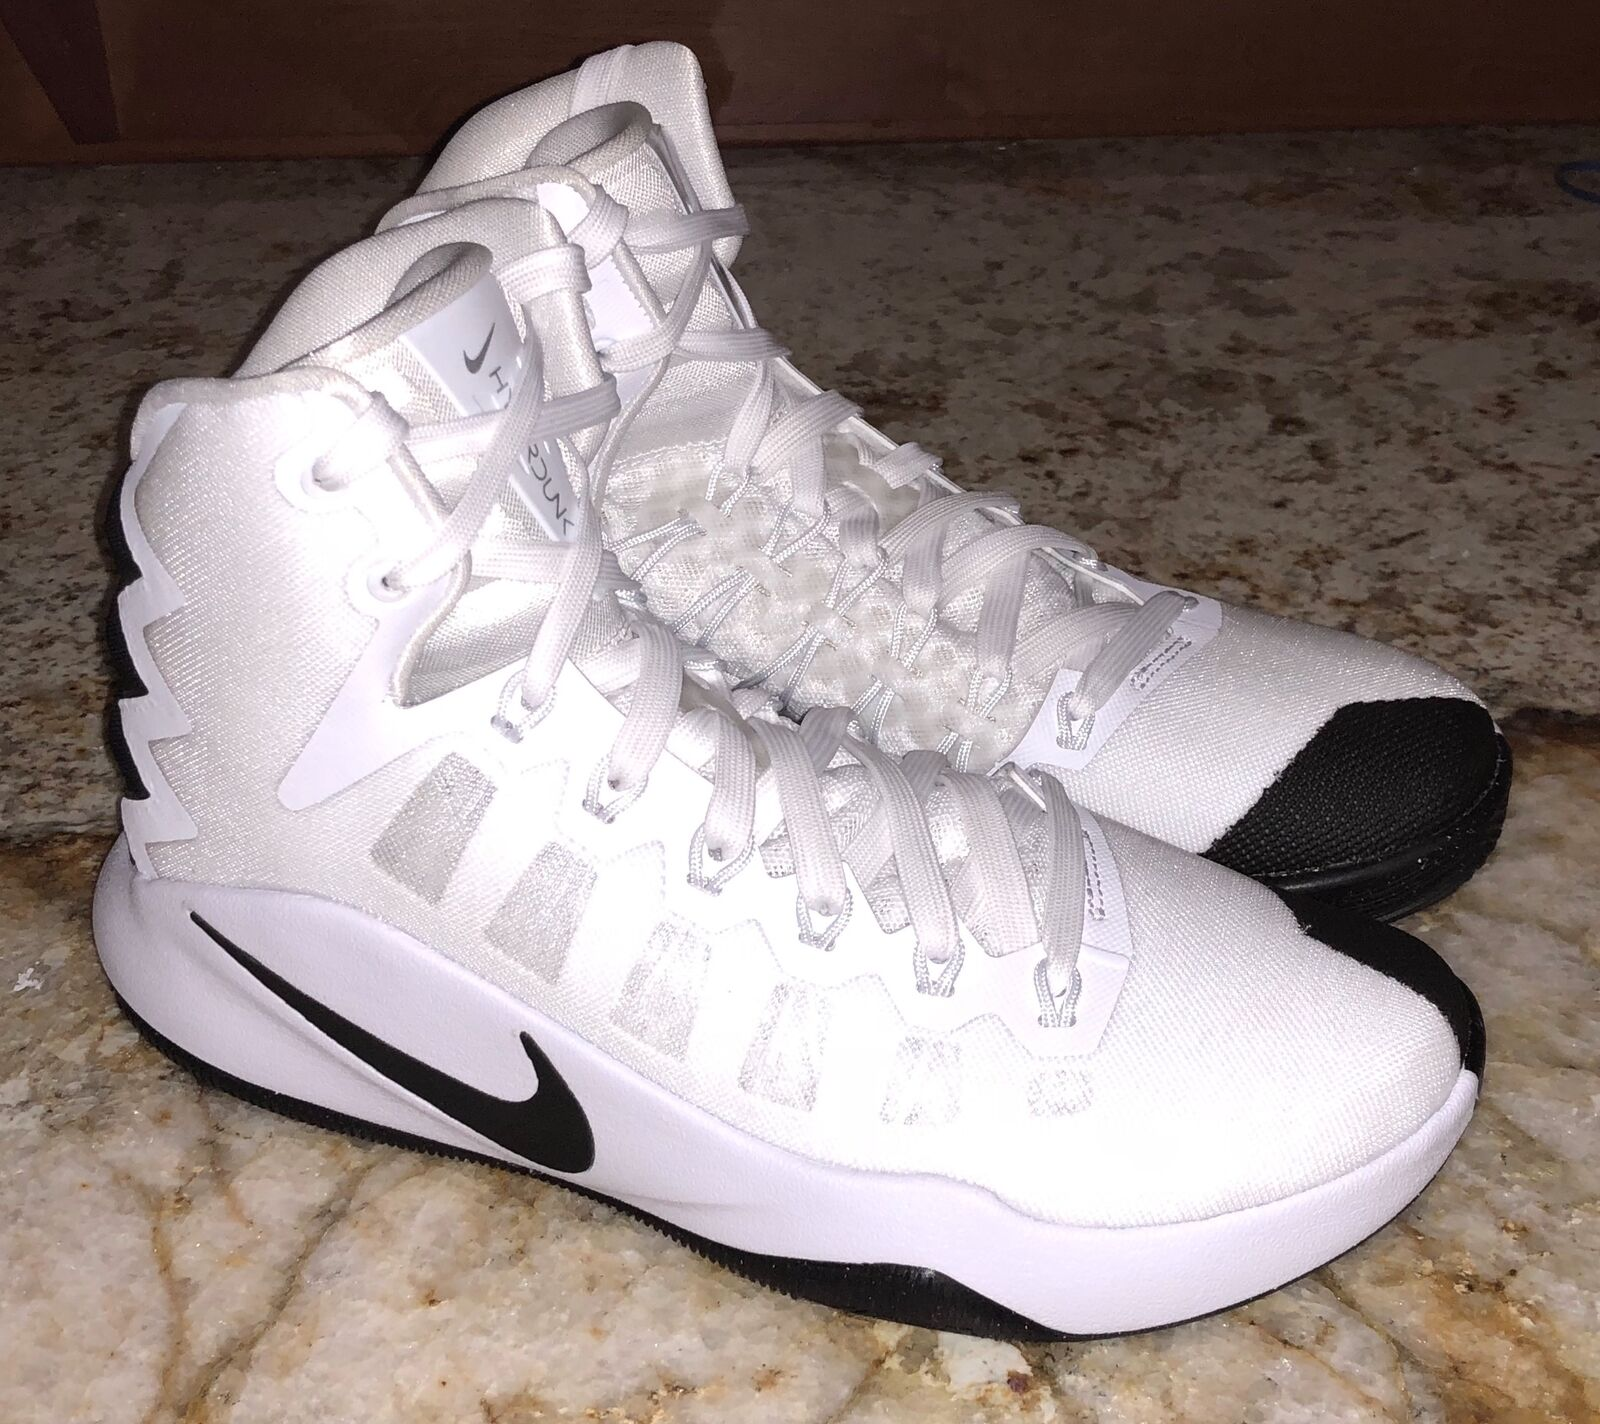 NIKE Hyperdunk 2016 White Black Basketball shoes Sneakers Womens Sz 5.5 6